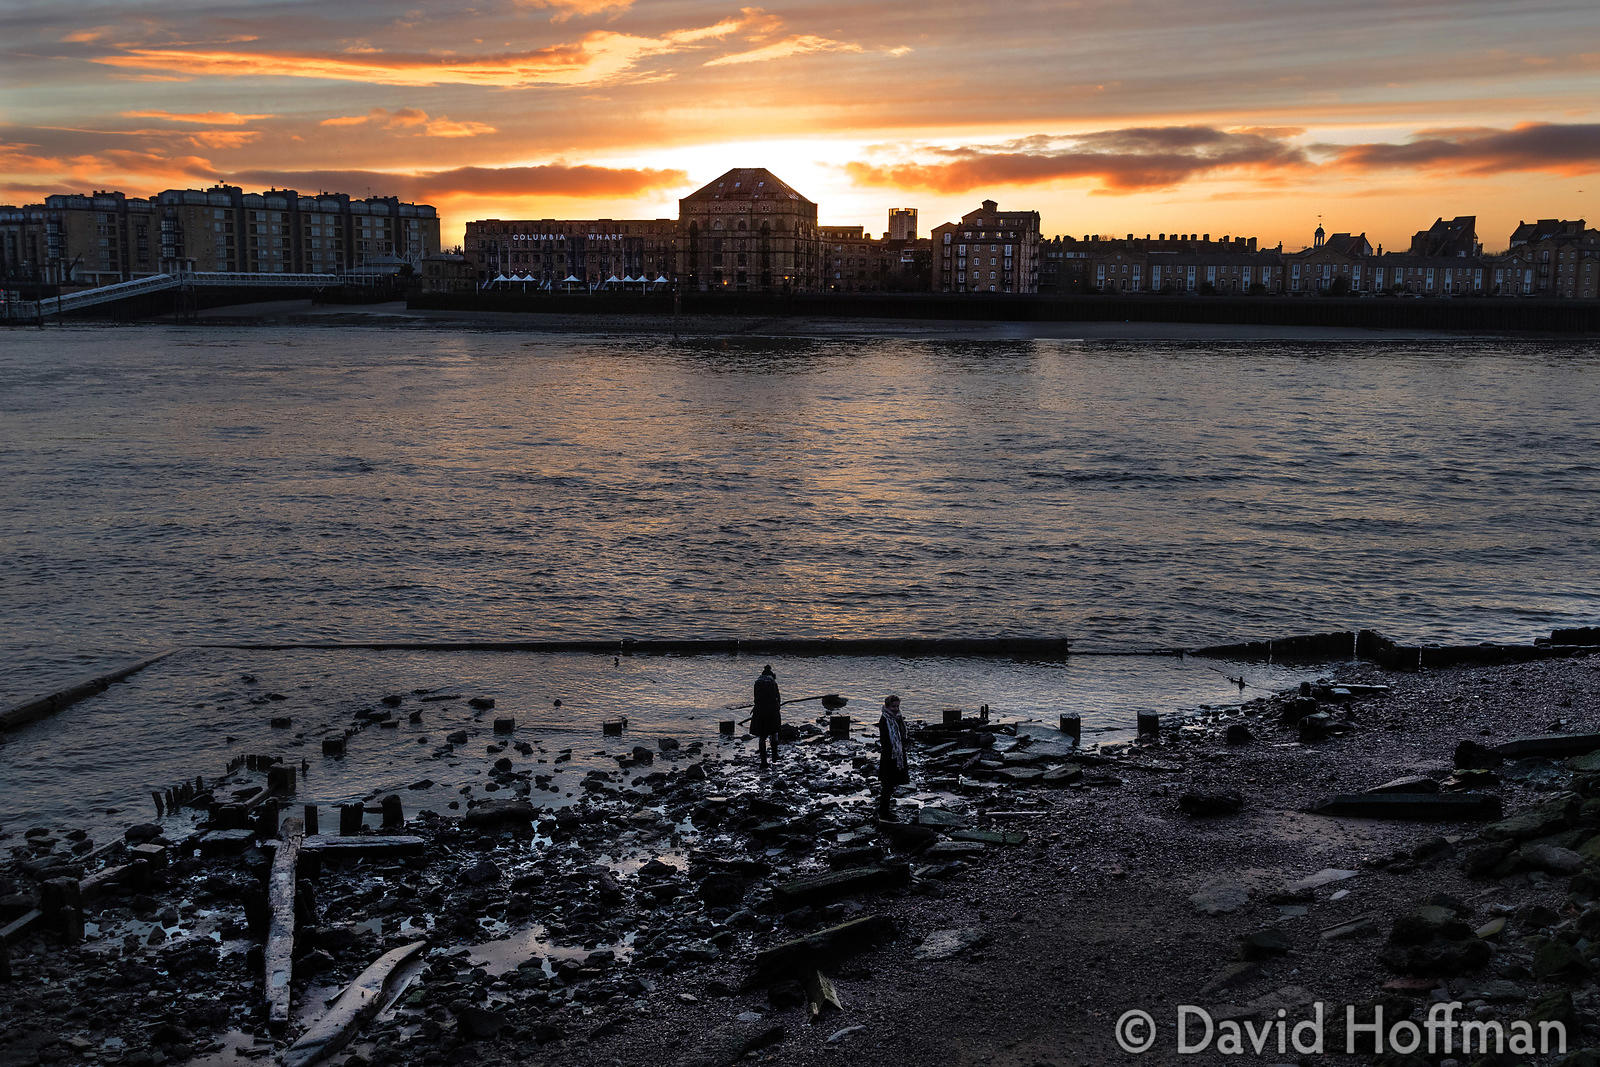 Come Hell or High Water, a monthly event that takes place on the Thames foreshore at low tide.